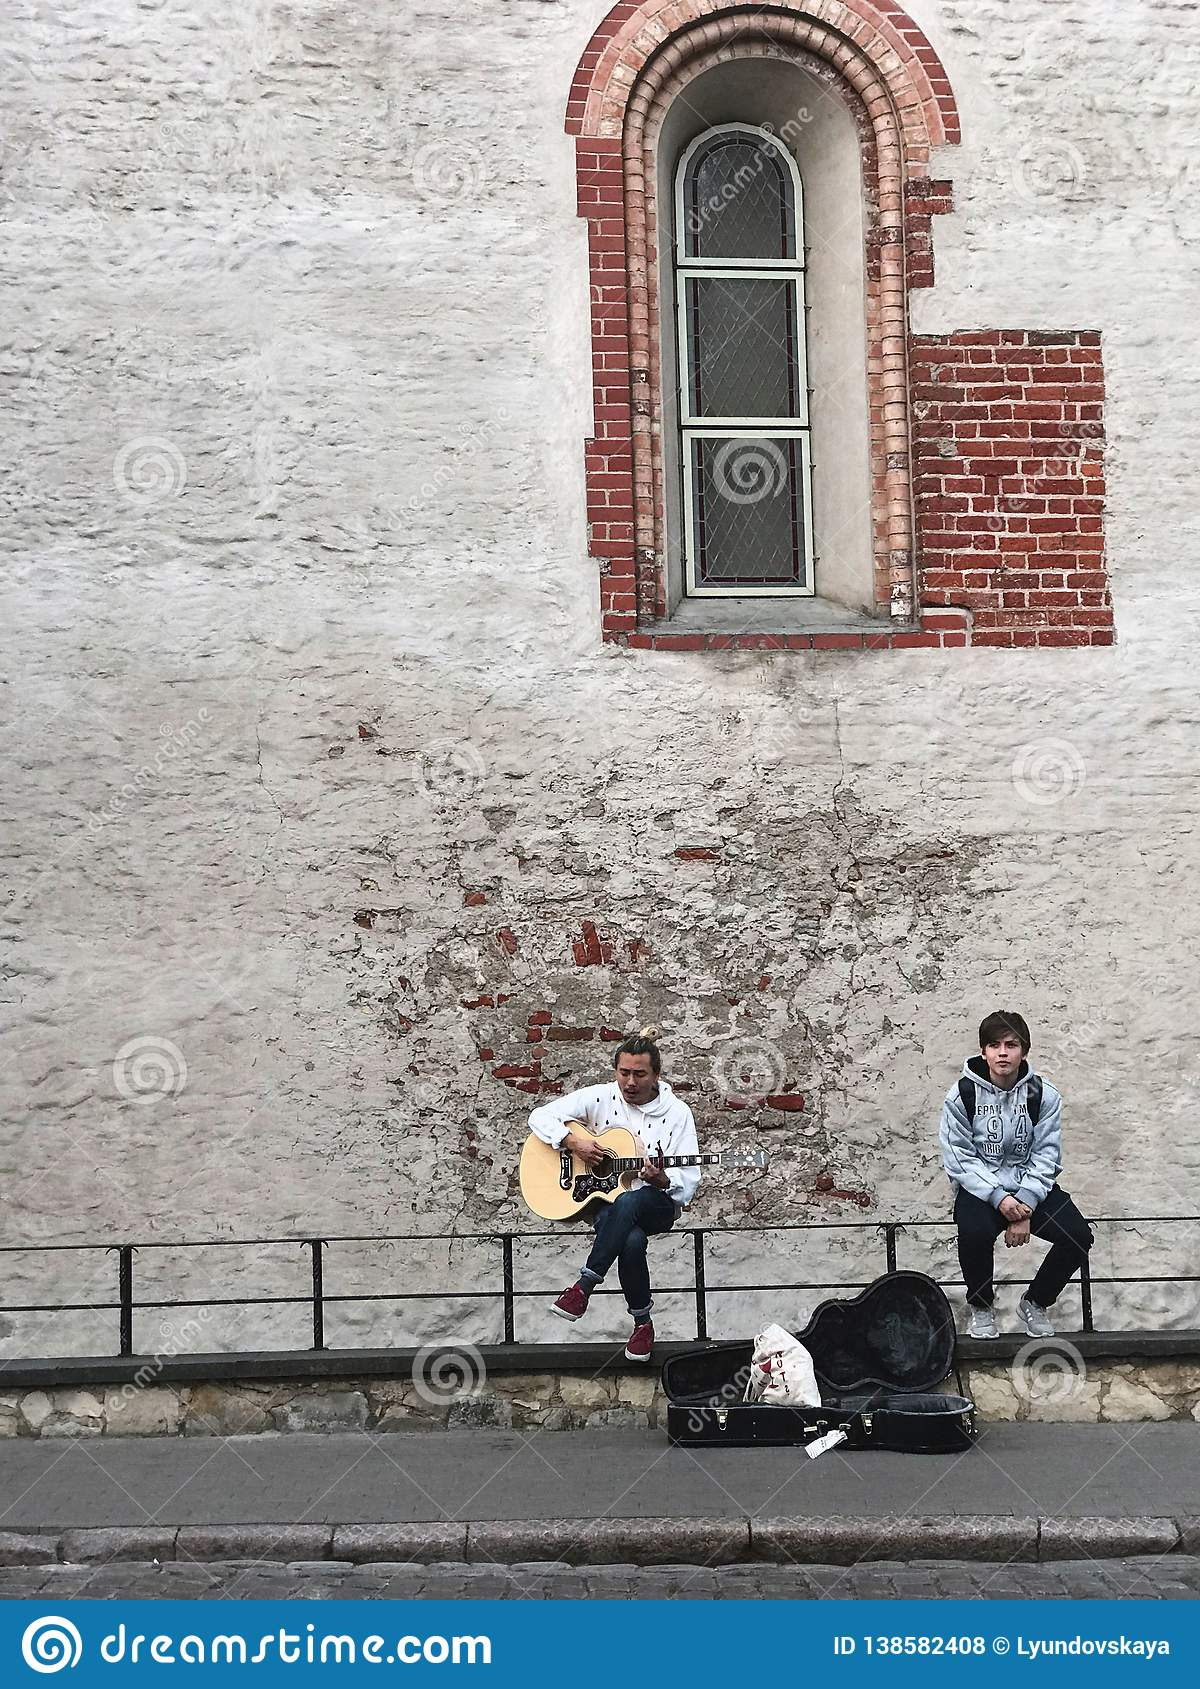 Riga, Latvia, September 18, 2018. One guy plays the guitar and sings a romantic song, the second one listens. Near the case from